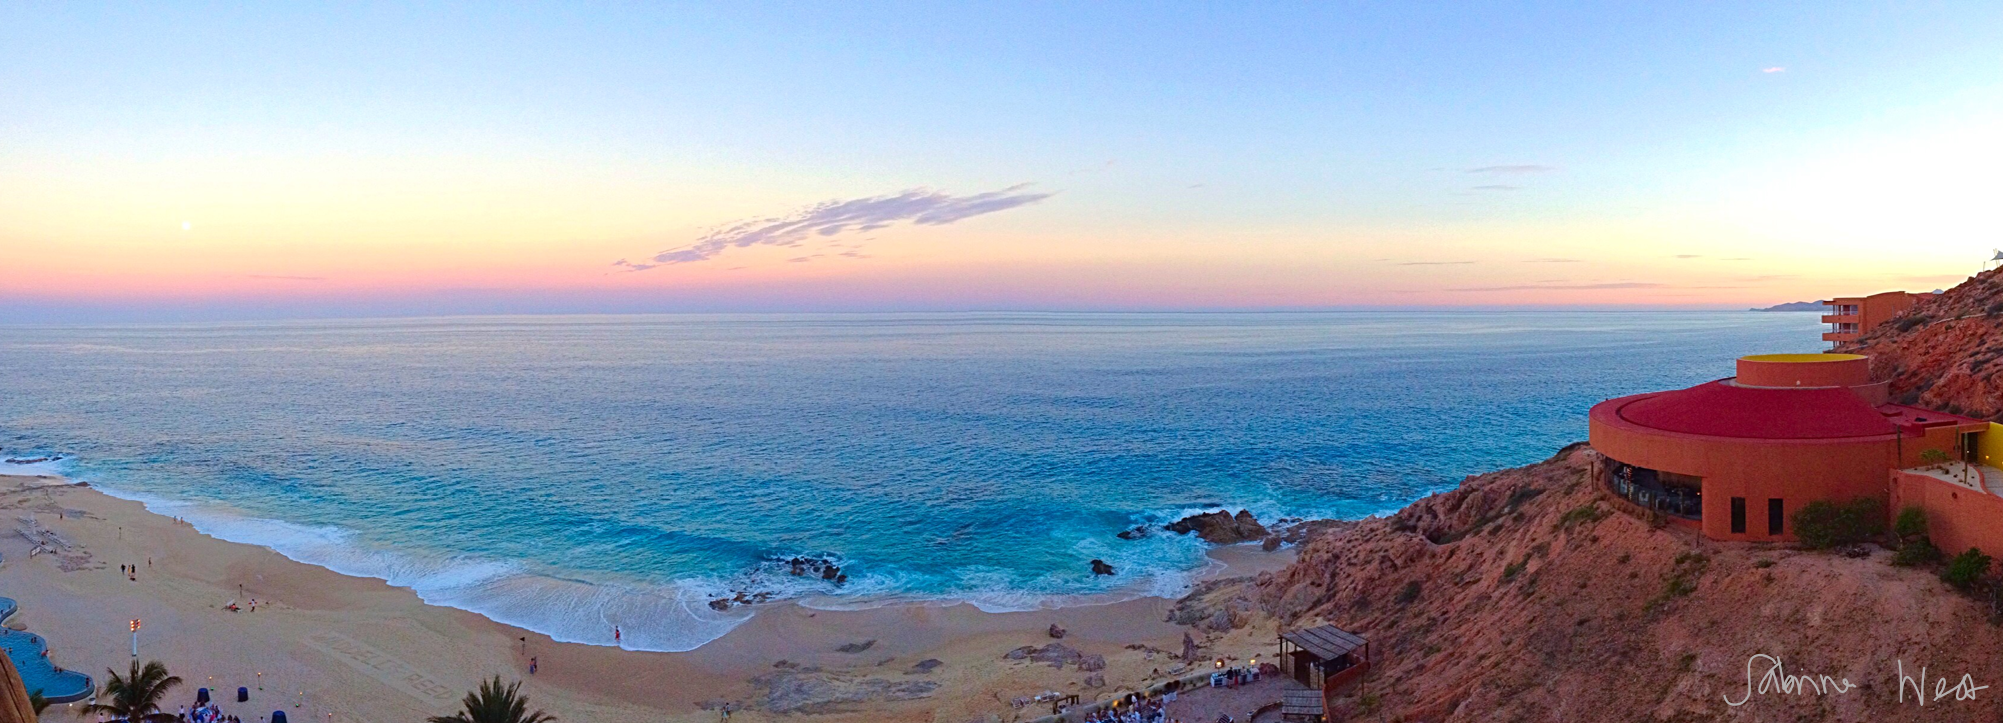 cabo sunset pano